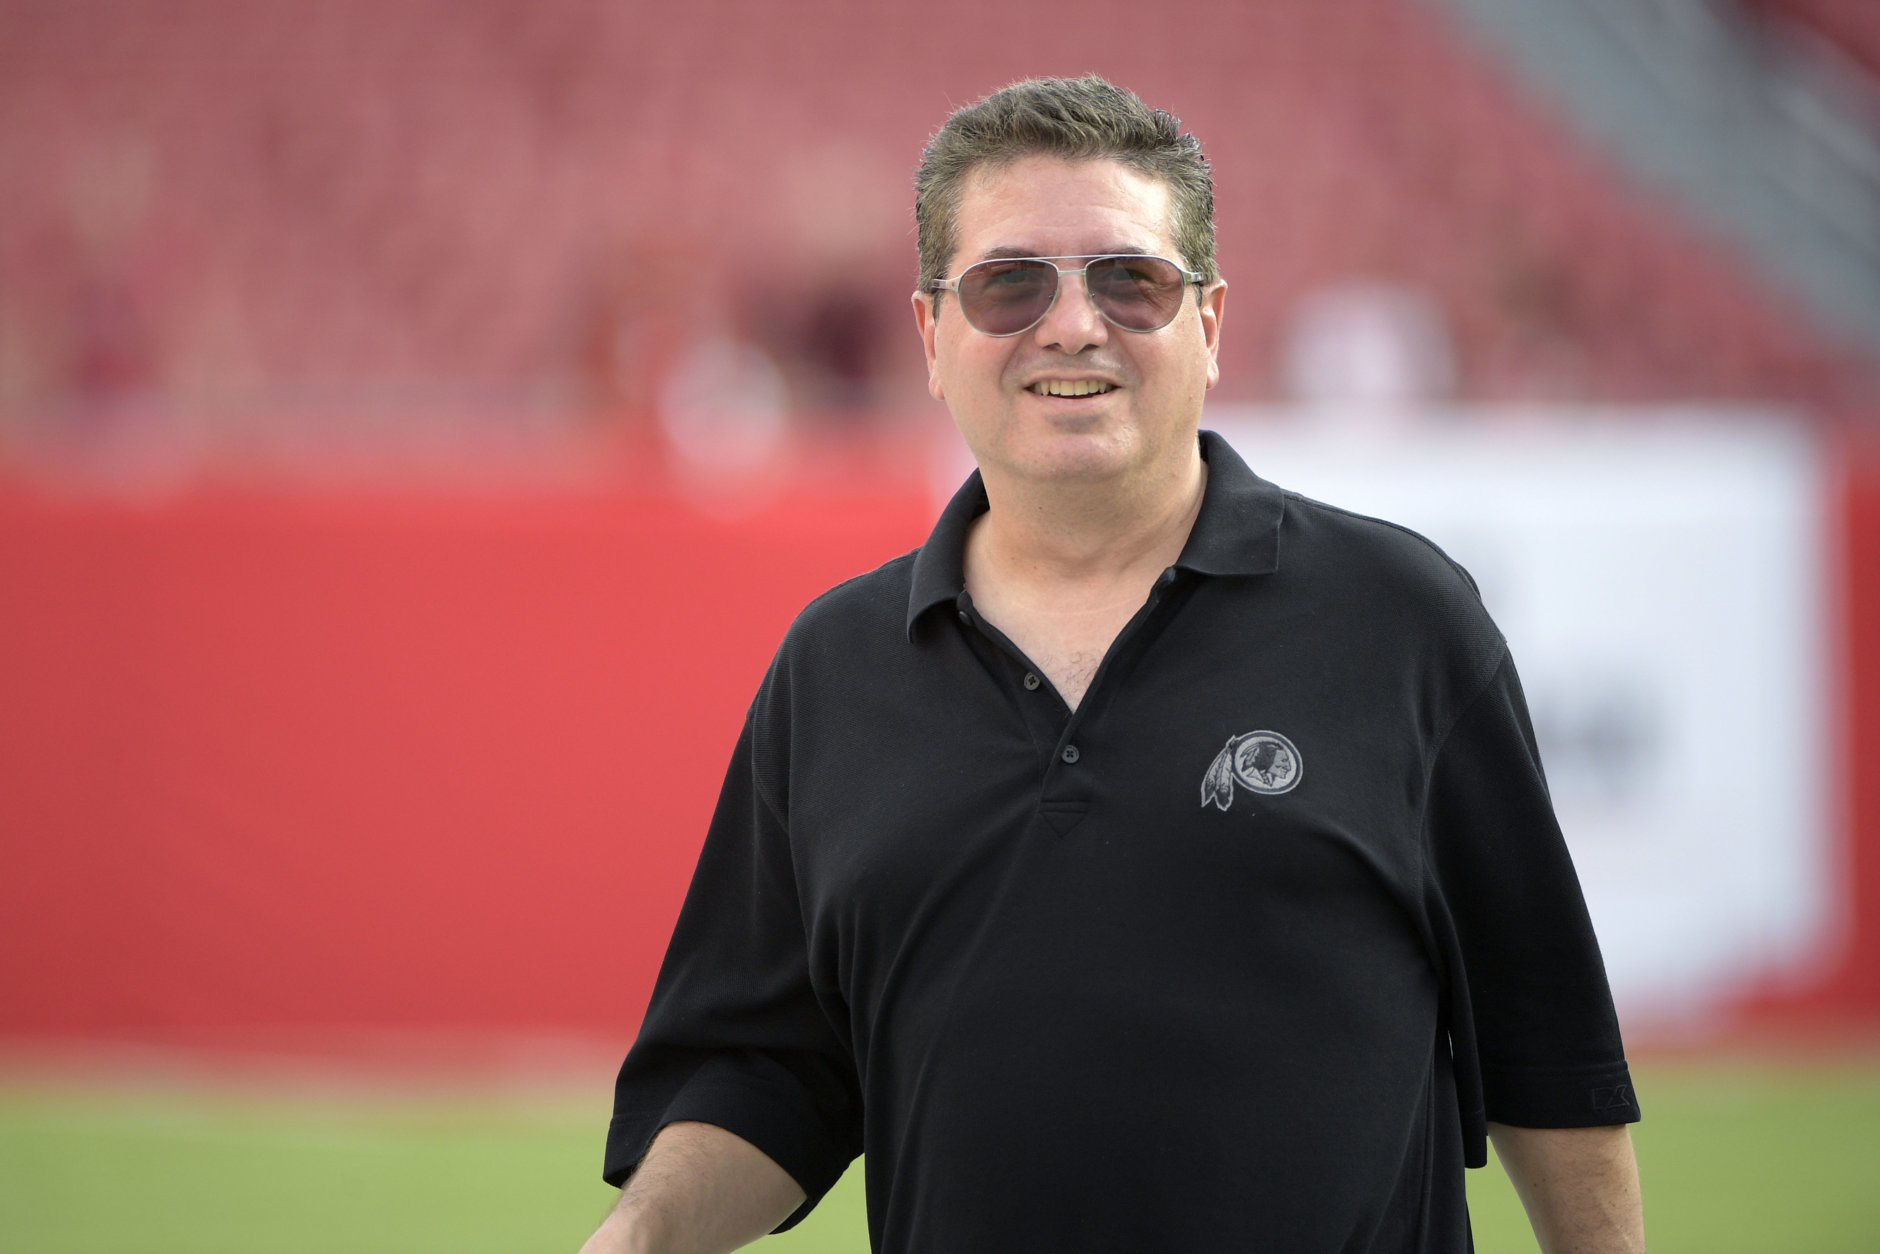 Washington Redskins owner Daniel Snyder watches warmups on the field before an NFL preseason football game against the Tampa Bay Buccaneers Thursday, Aug. 31, 2017, in Tampa, Fla. (AP Photo/Phelan M. Ebenhack)